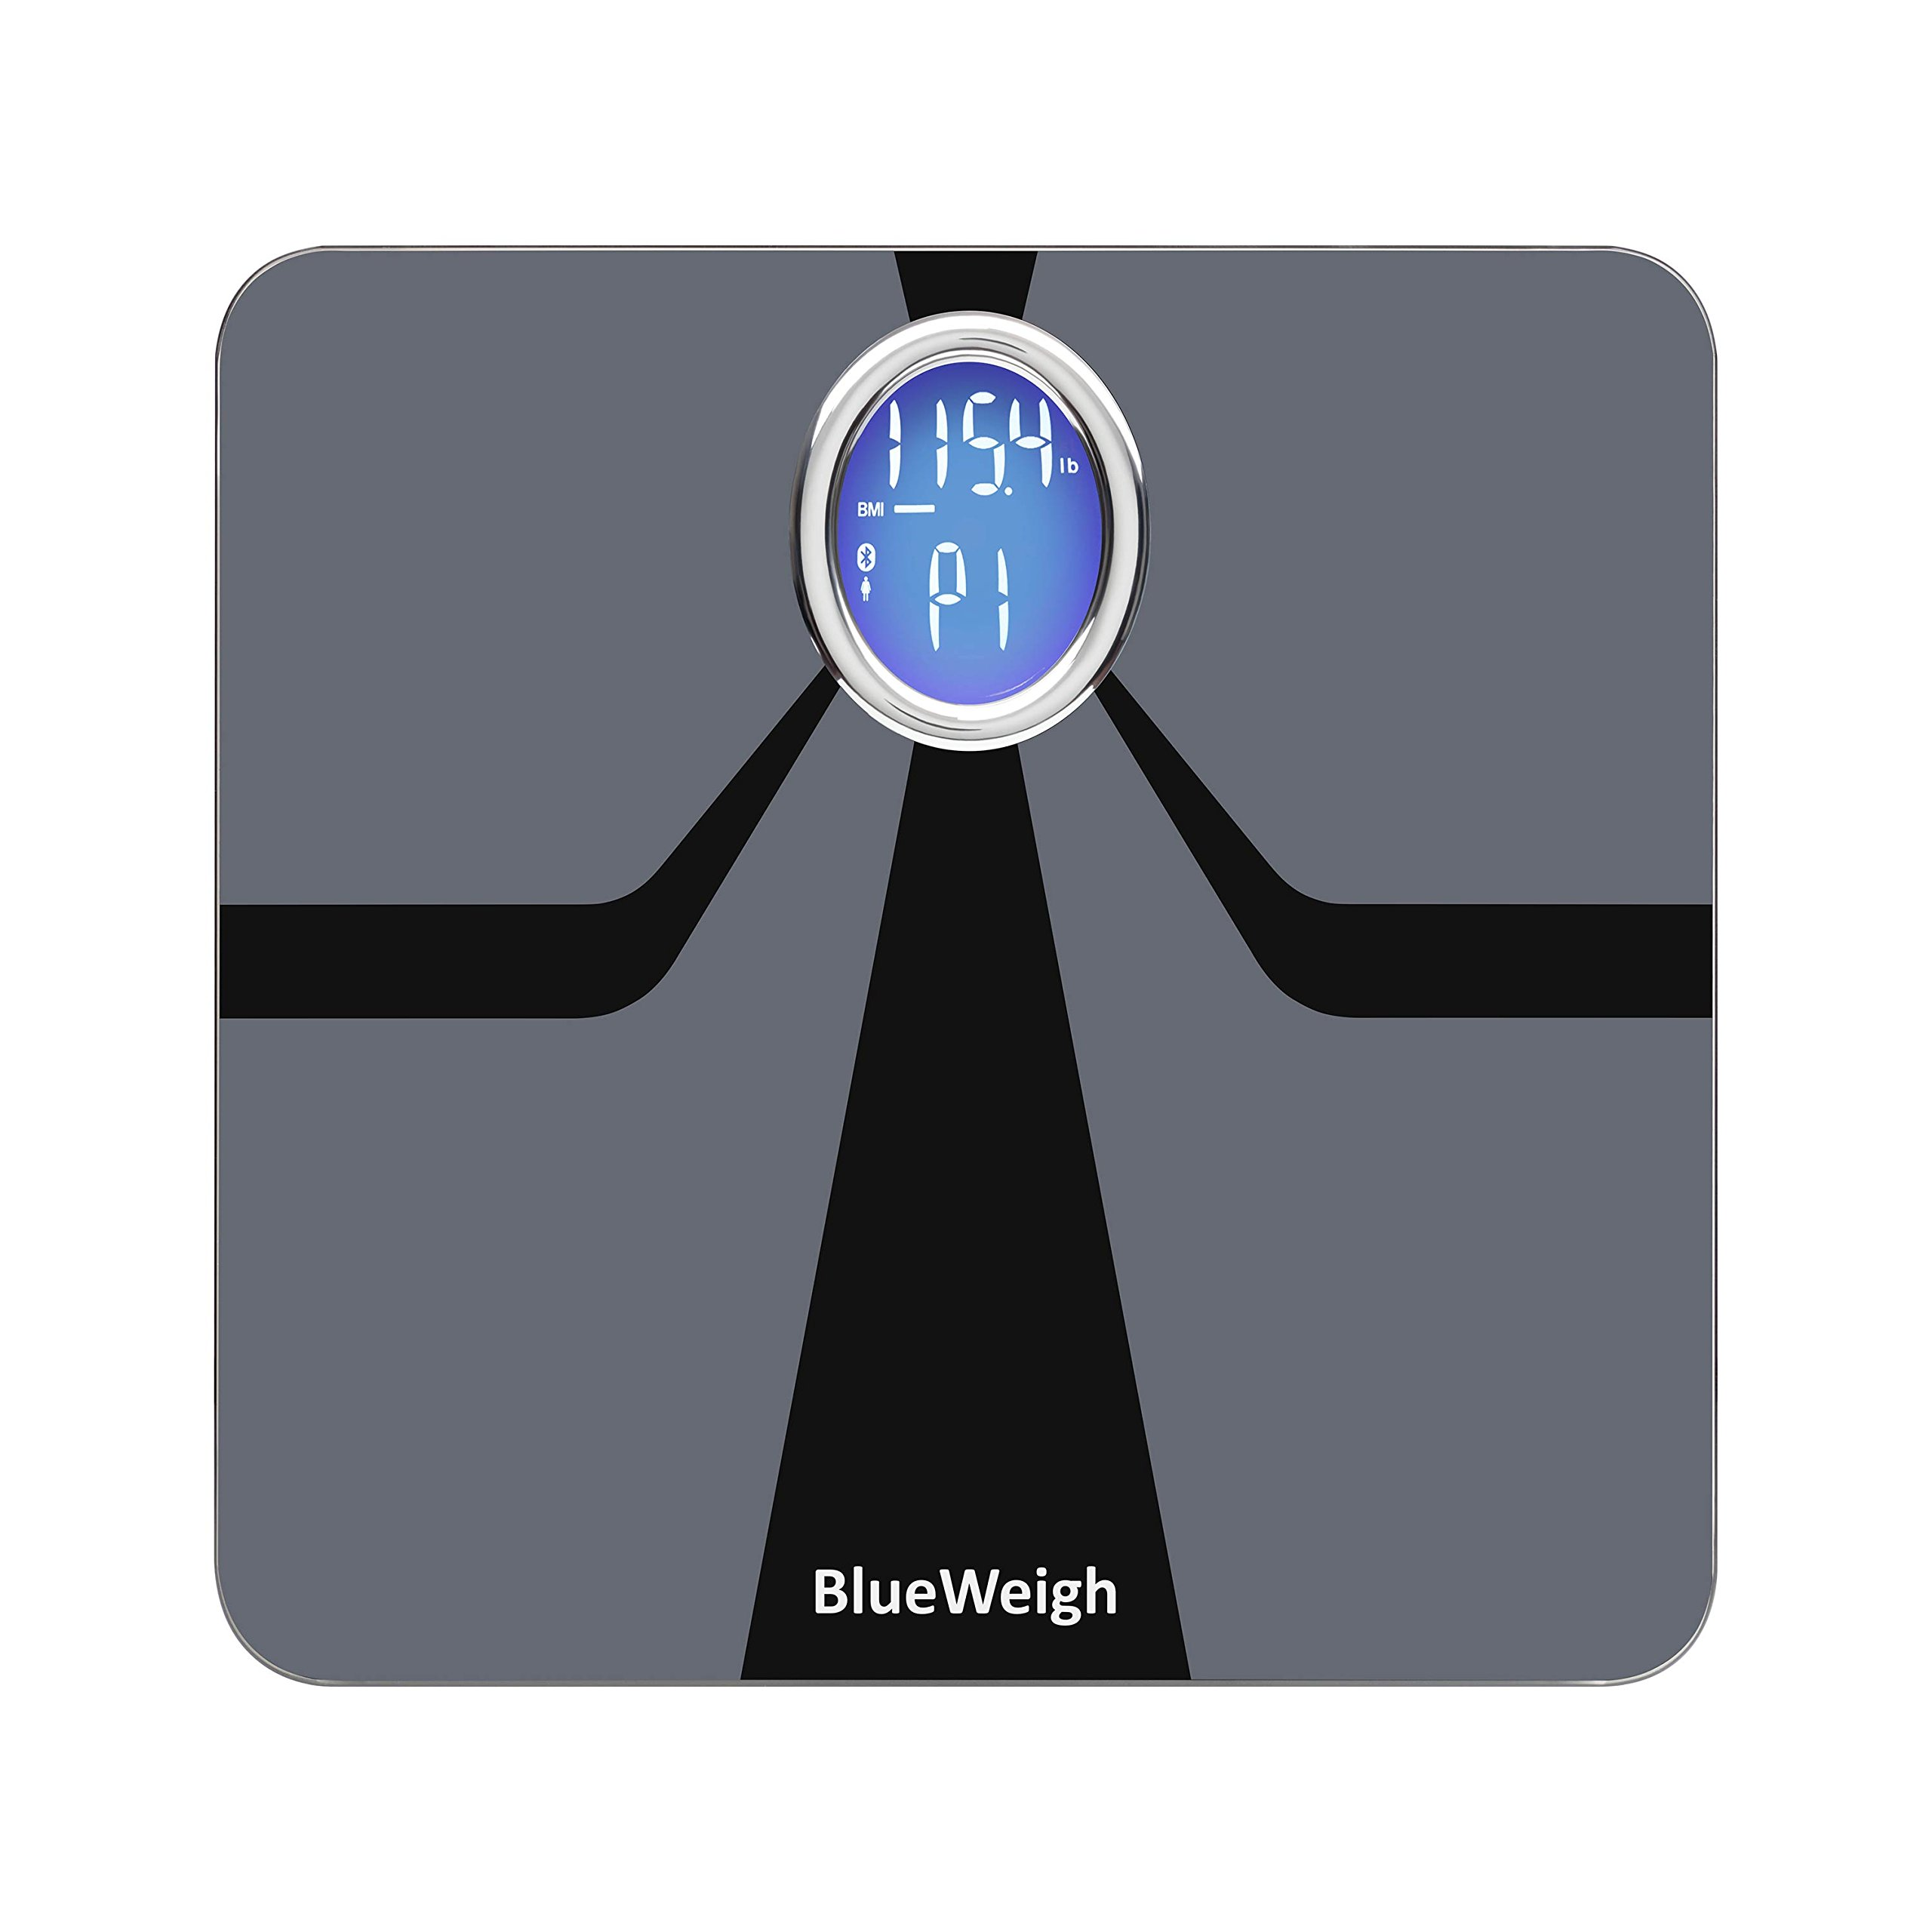 BlueWeigh Oreo Smart Body Composition Analyzer Scale. Measures: Body Weight/Fat/Muscle/Water Content/Bone Mass, Visceral Fat, BMI and BMR